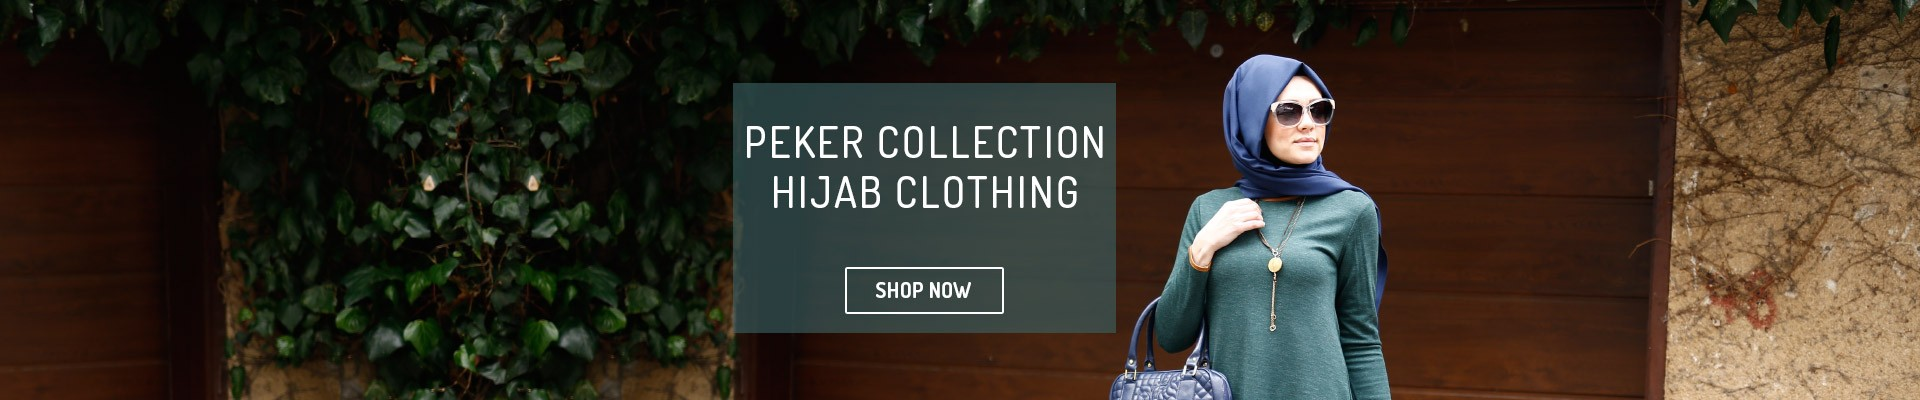 Peker Collection